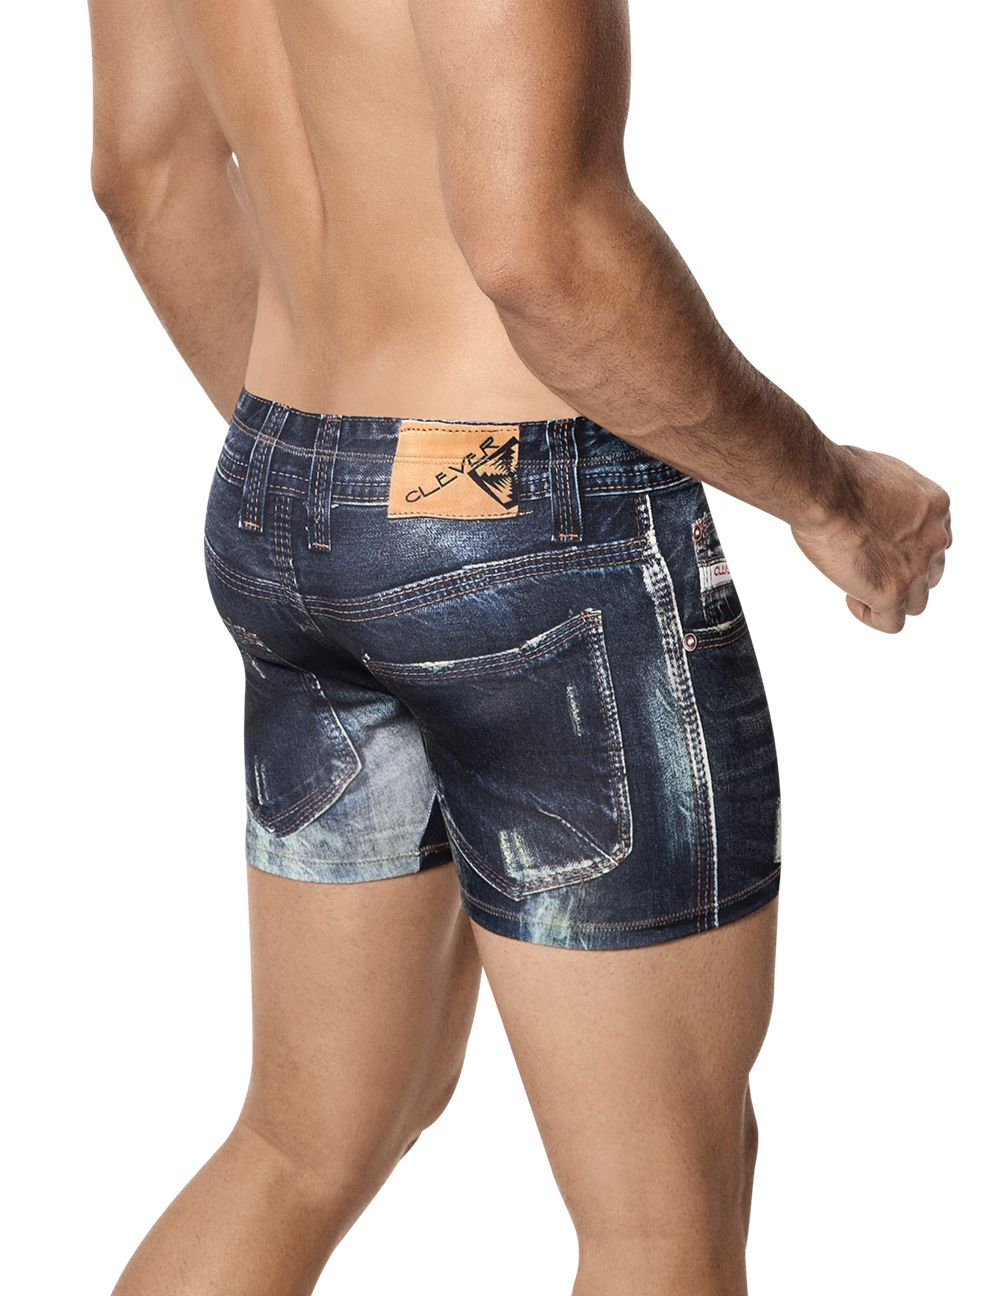 Male underwear model wearing Clever 2201 Denim Jean Boxer available at www.MensUnderwear.io